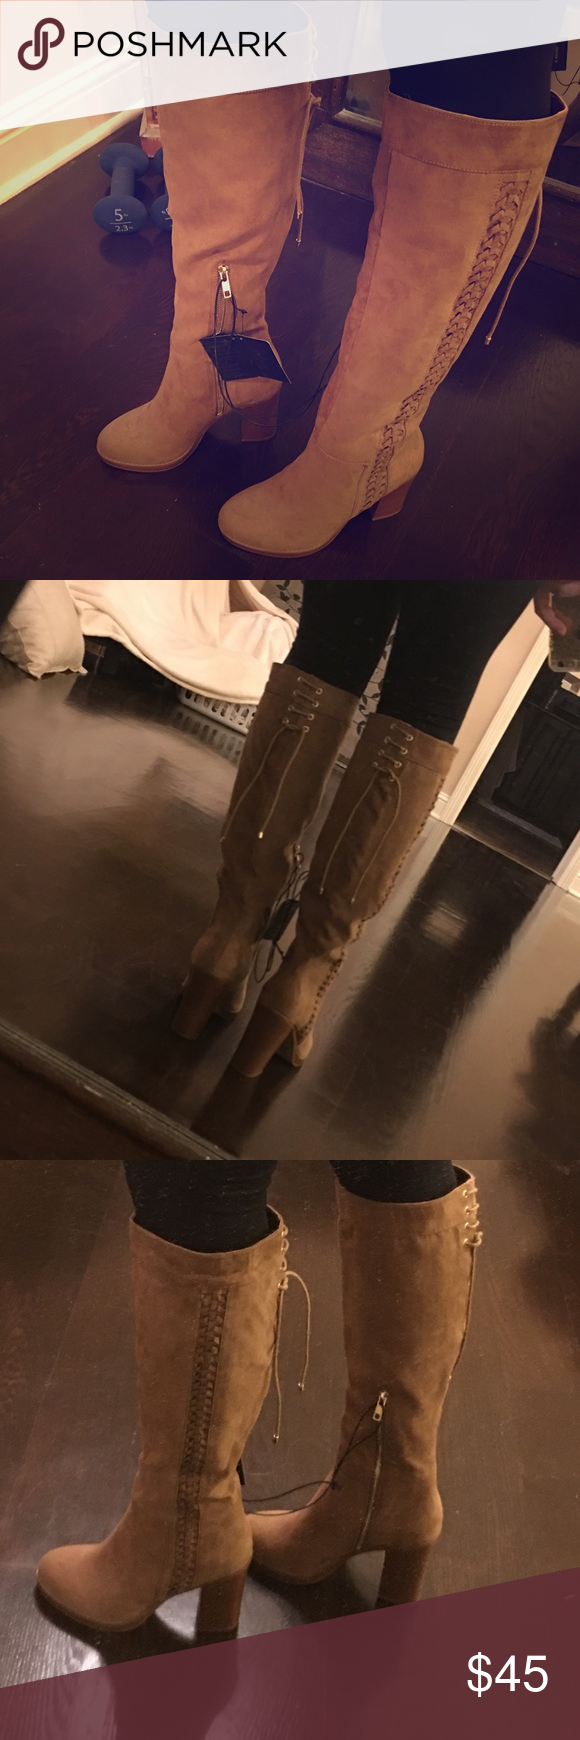 Tan Suede boots High suede taupe boots with lace up in the back size 8 takes still attached Forever 21 Shoes Heeled Boots